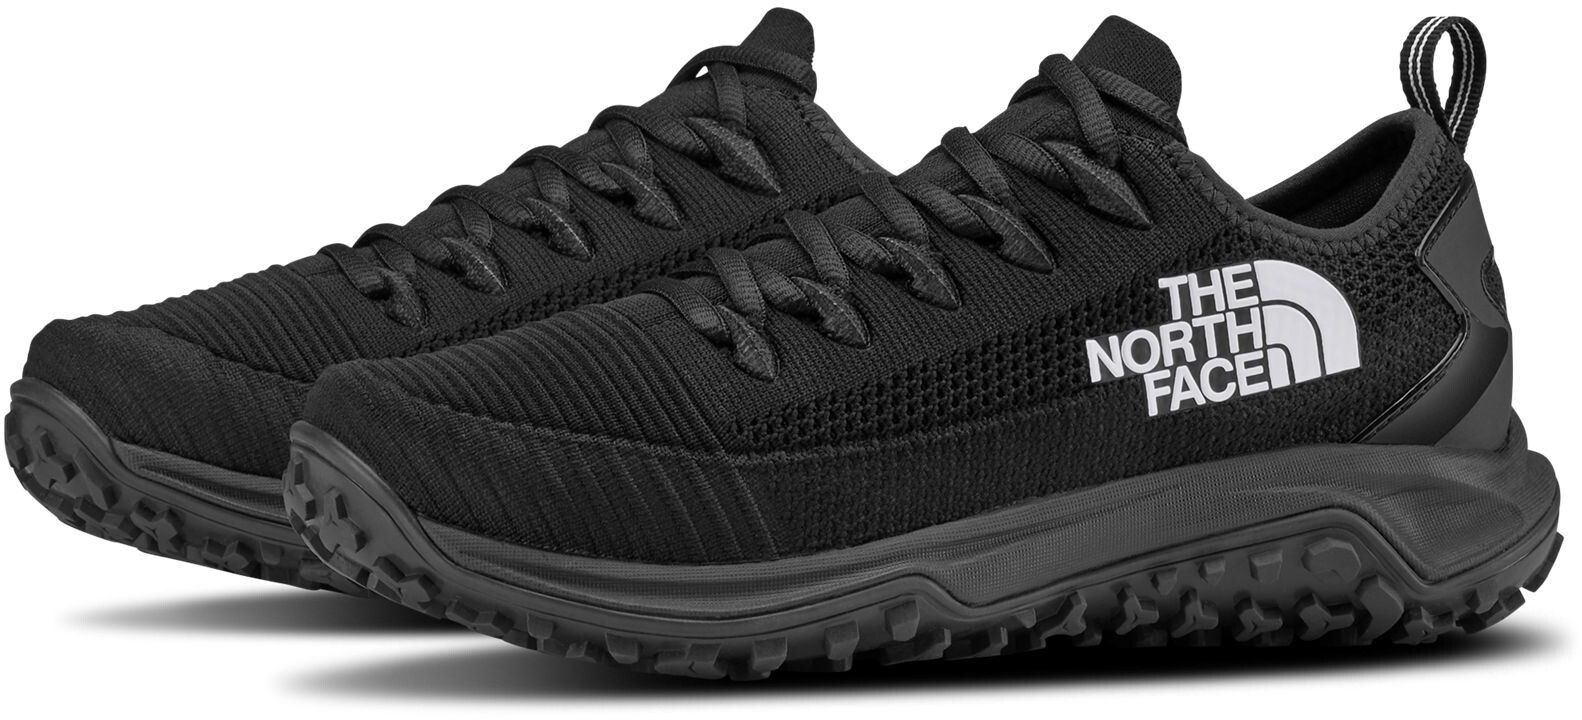 Test The North Face Truxel W 2019 : chaussure de marche Femme